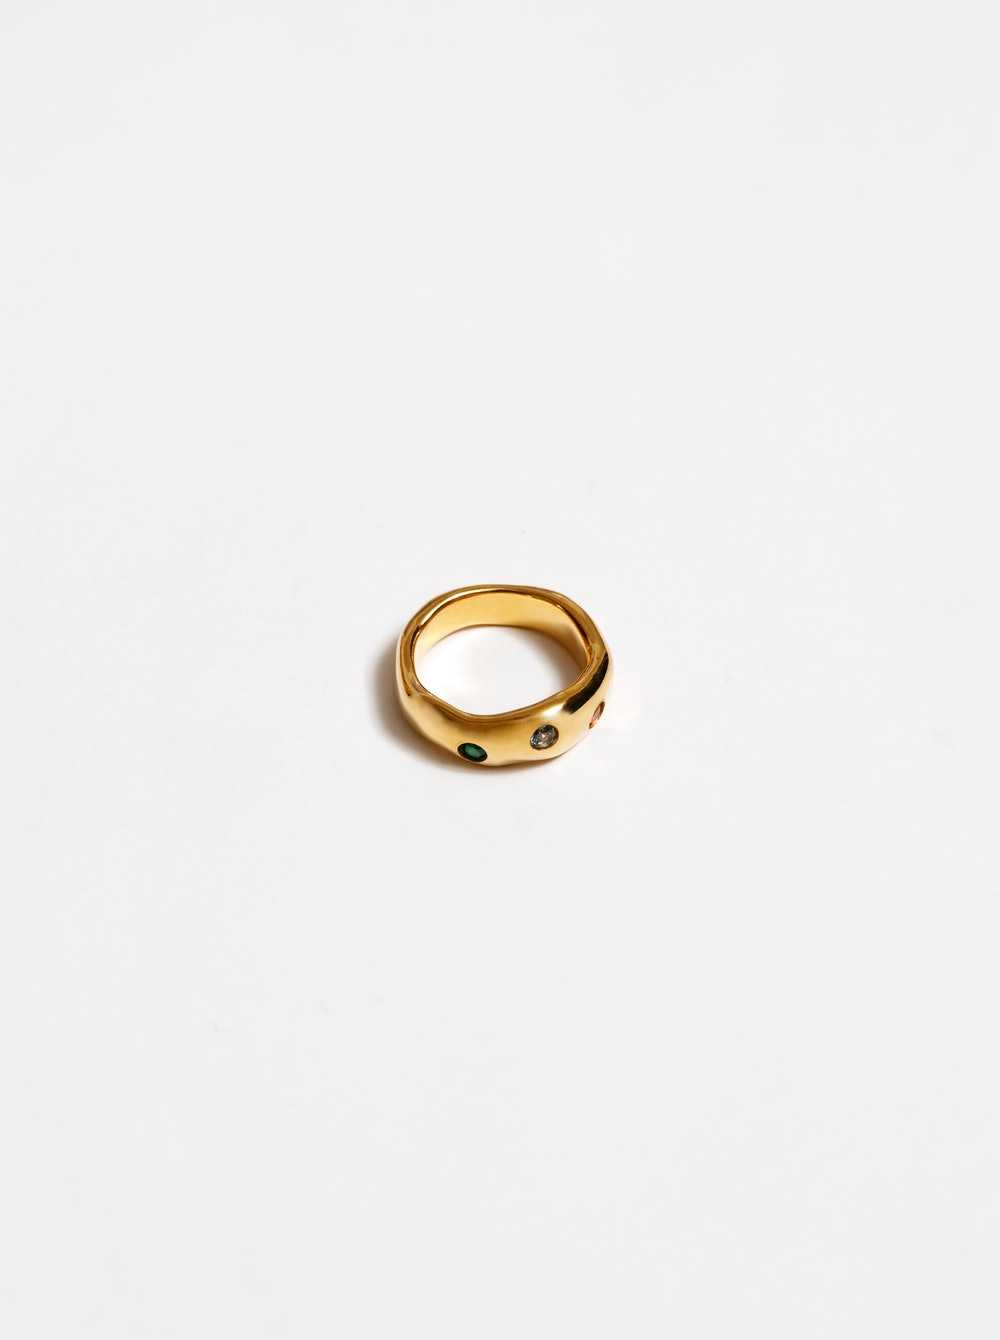 Ophelia Ring in Gold